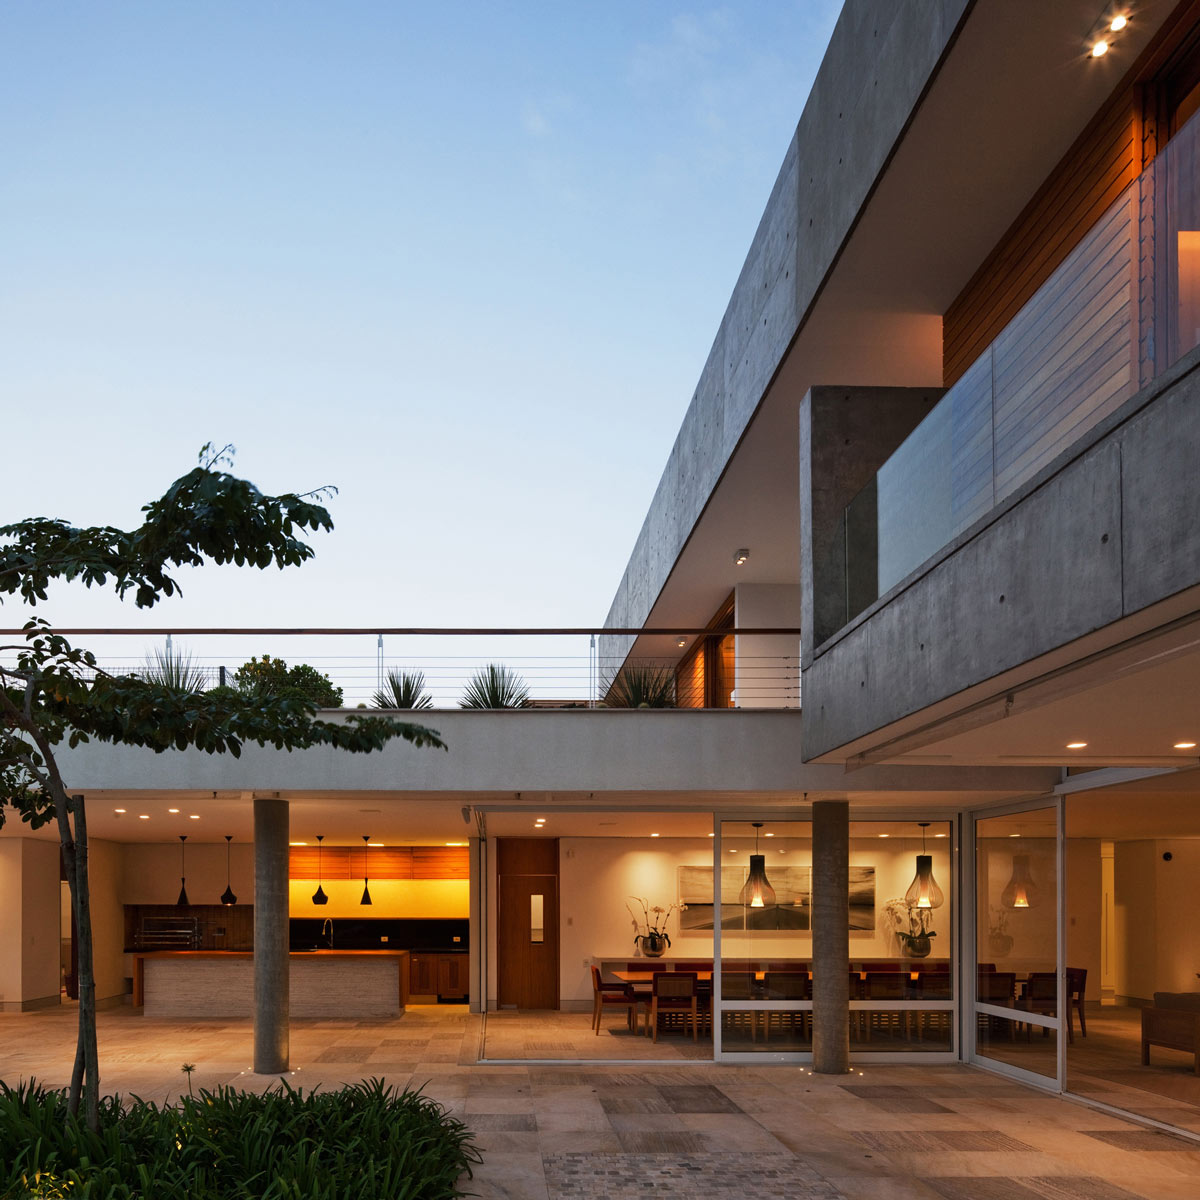 Terrace, Patio Doors, Lighting, FG Residence in Araraquara, Brazil